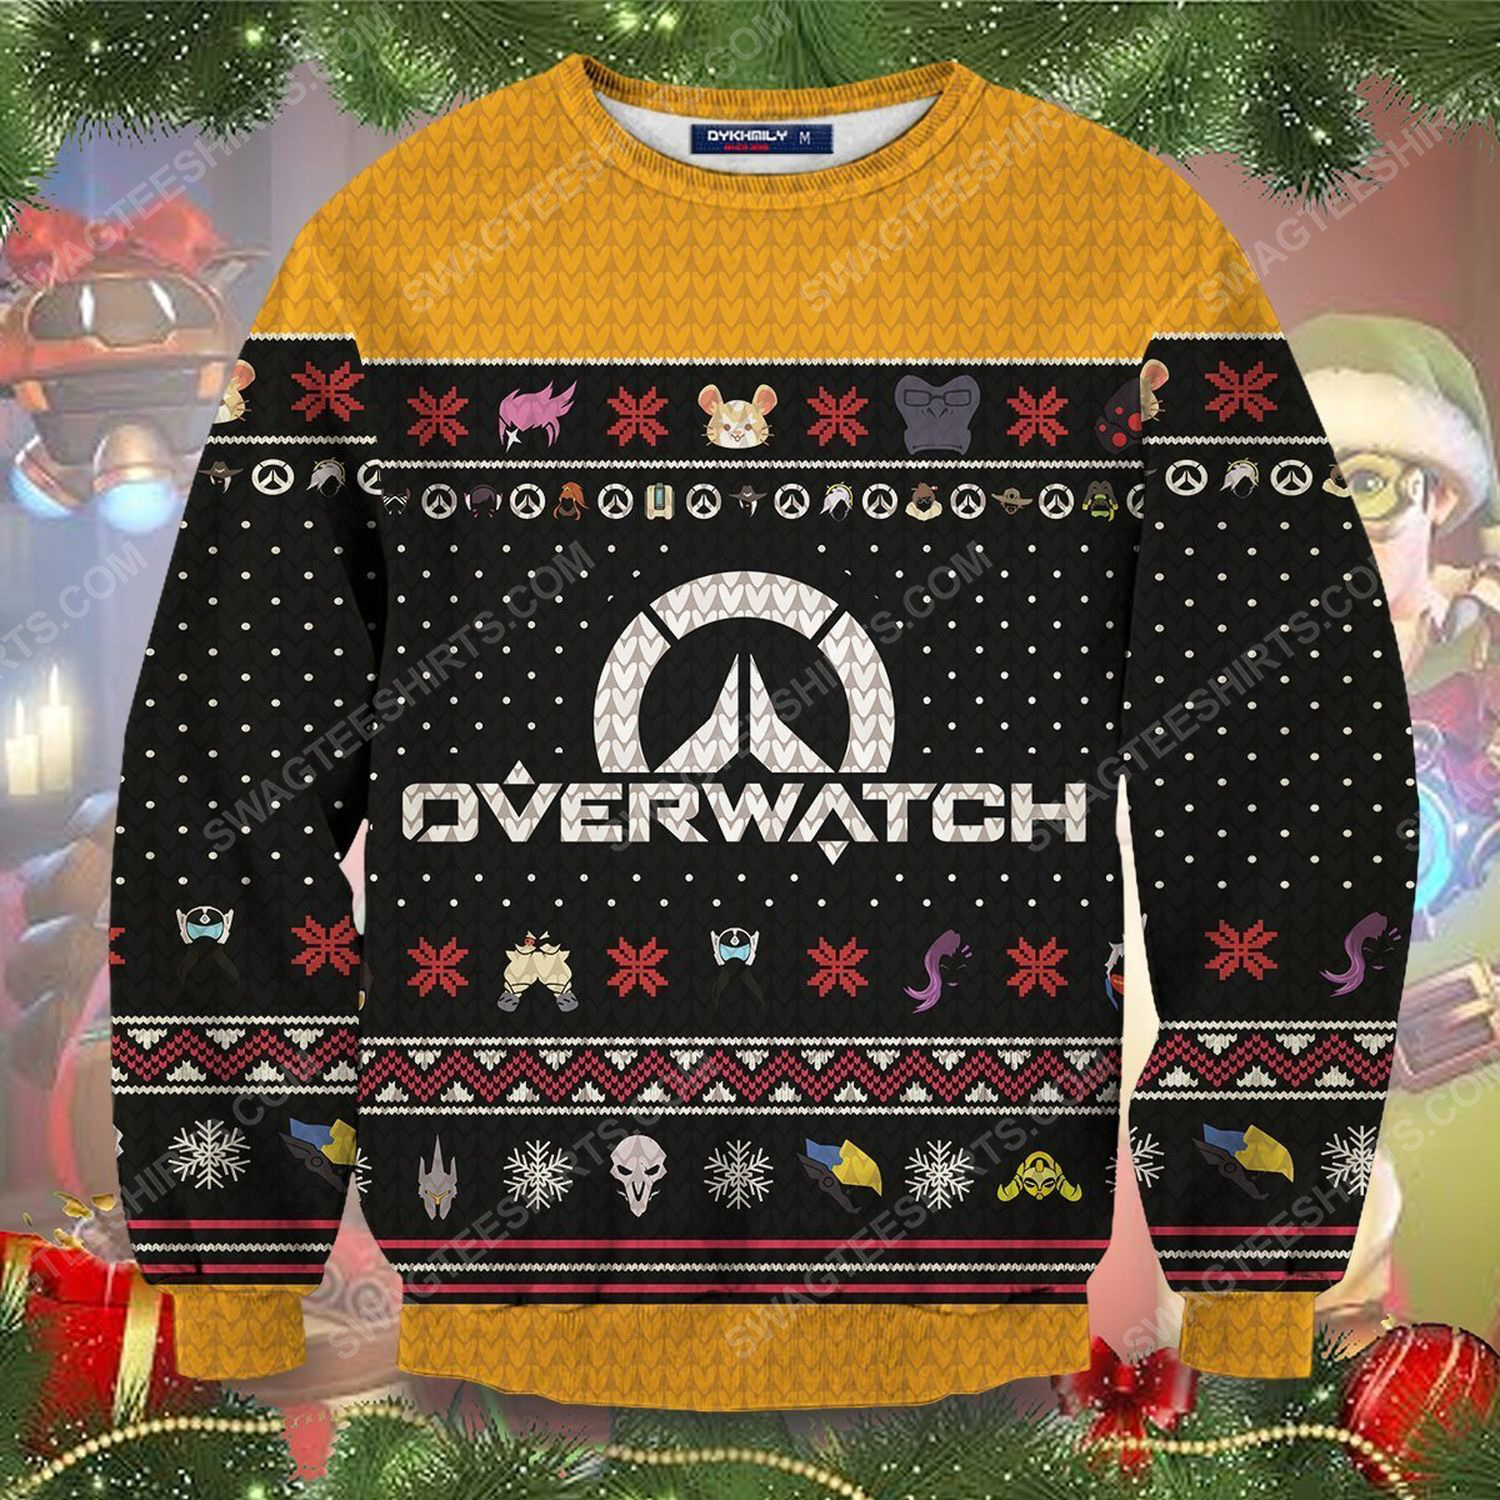 Ultimate overwatch full printing ugly christmas sweater 1